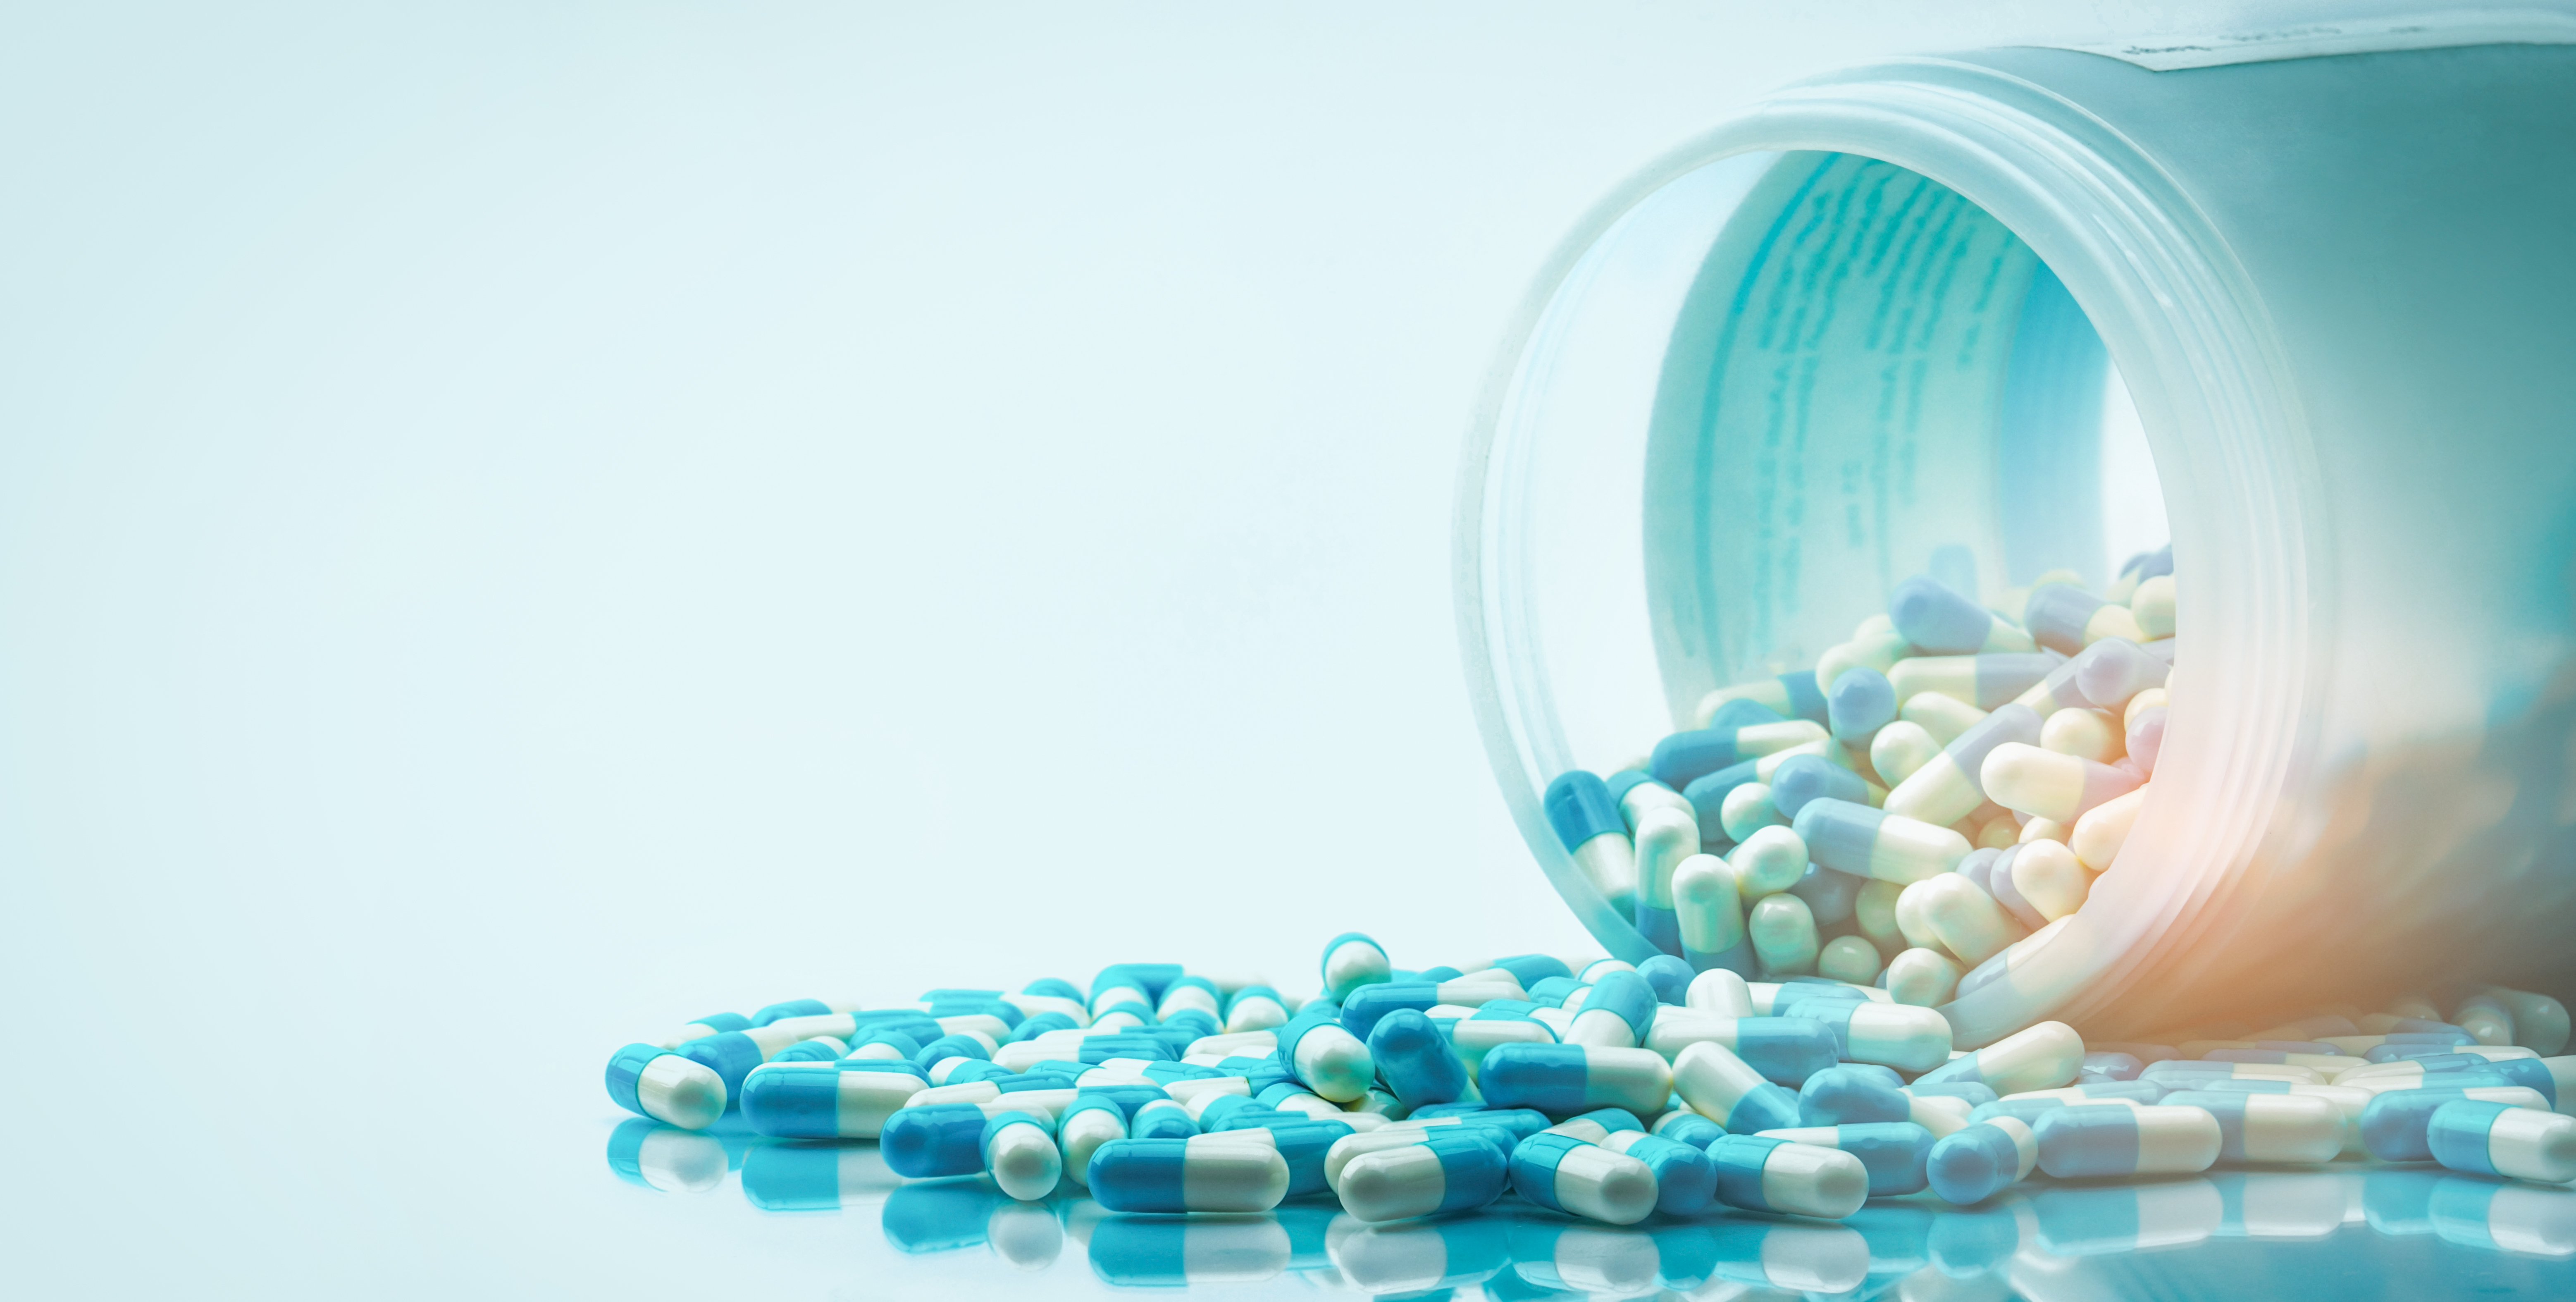 Beyond Pharmaceuticals, Opioids and Liability